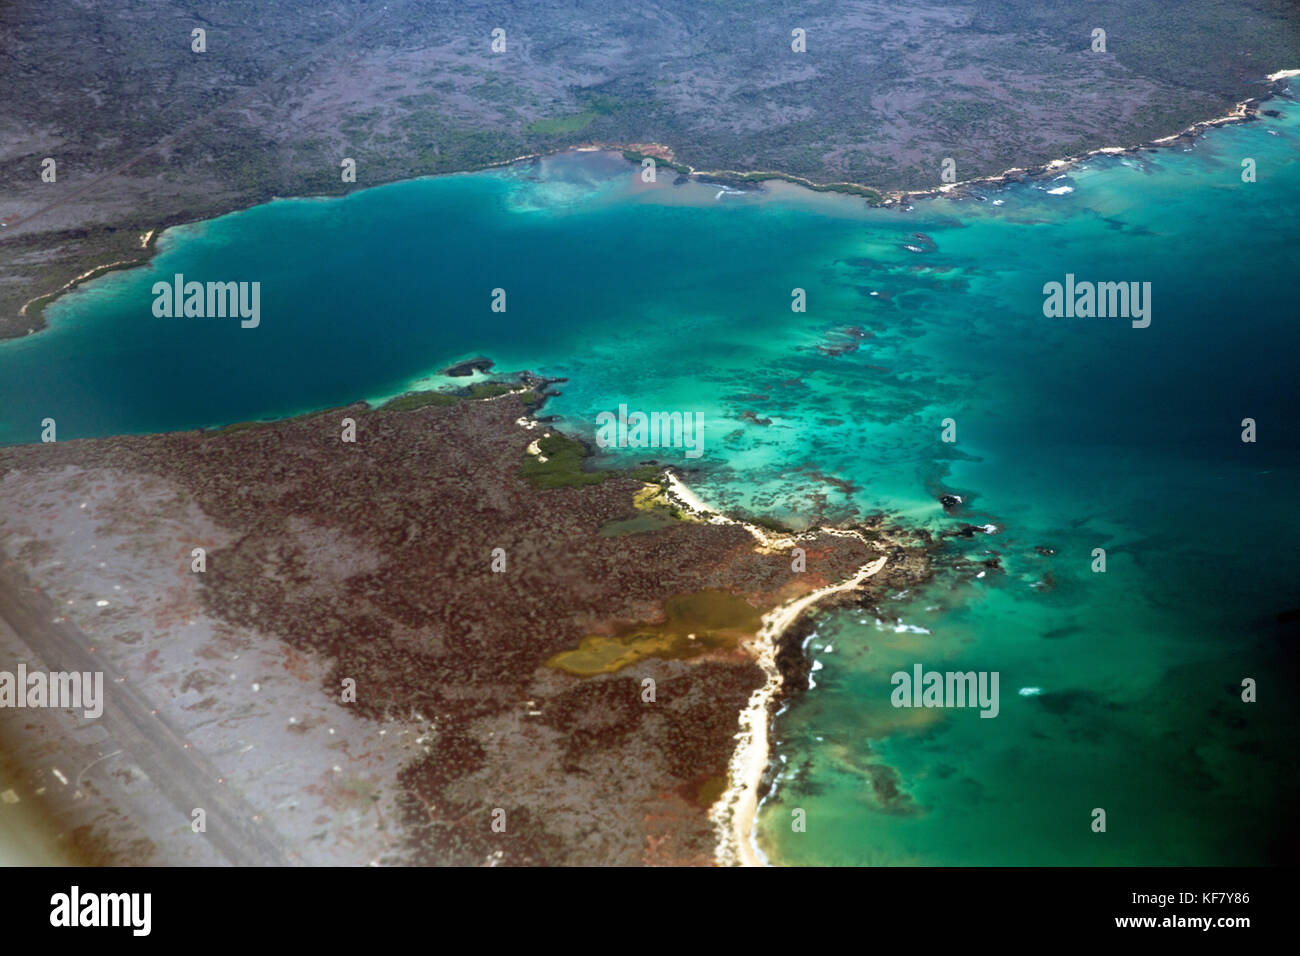 GALAPAGOS ISLANDS, ECUADOR, view from the airplane on the approach into Baltra - Stock Image